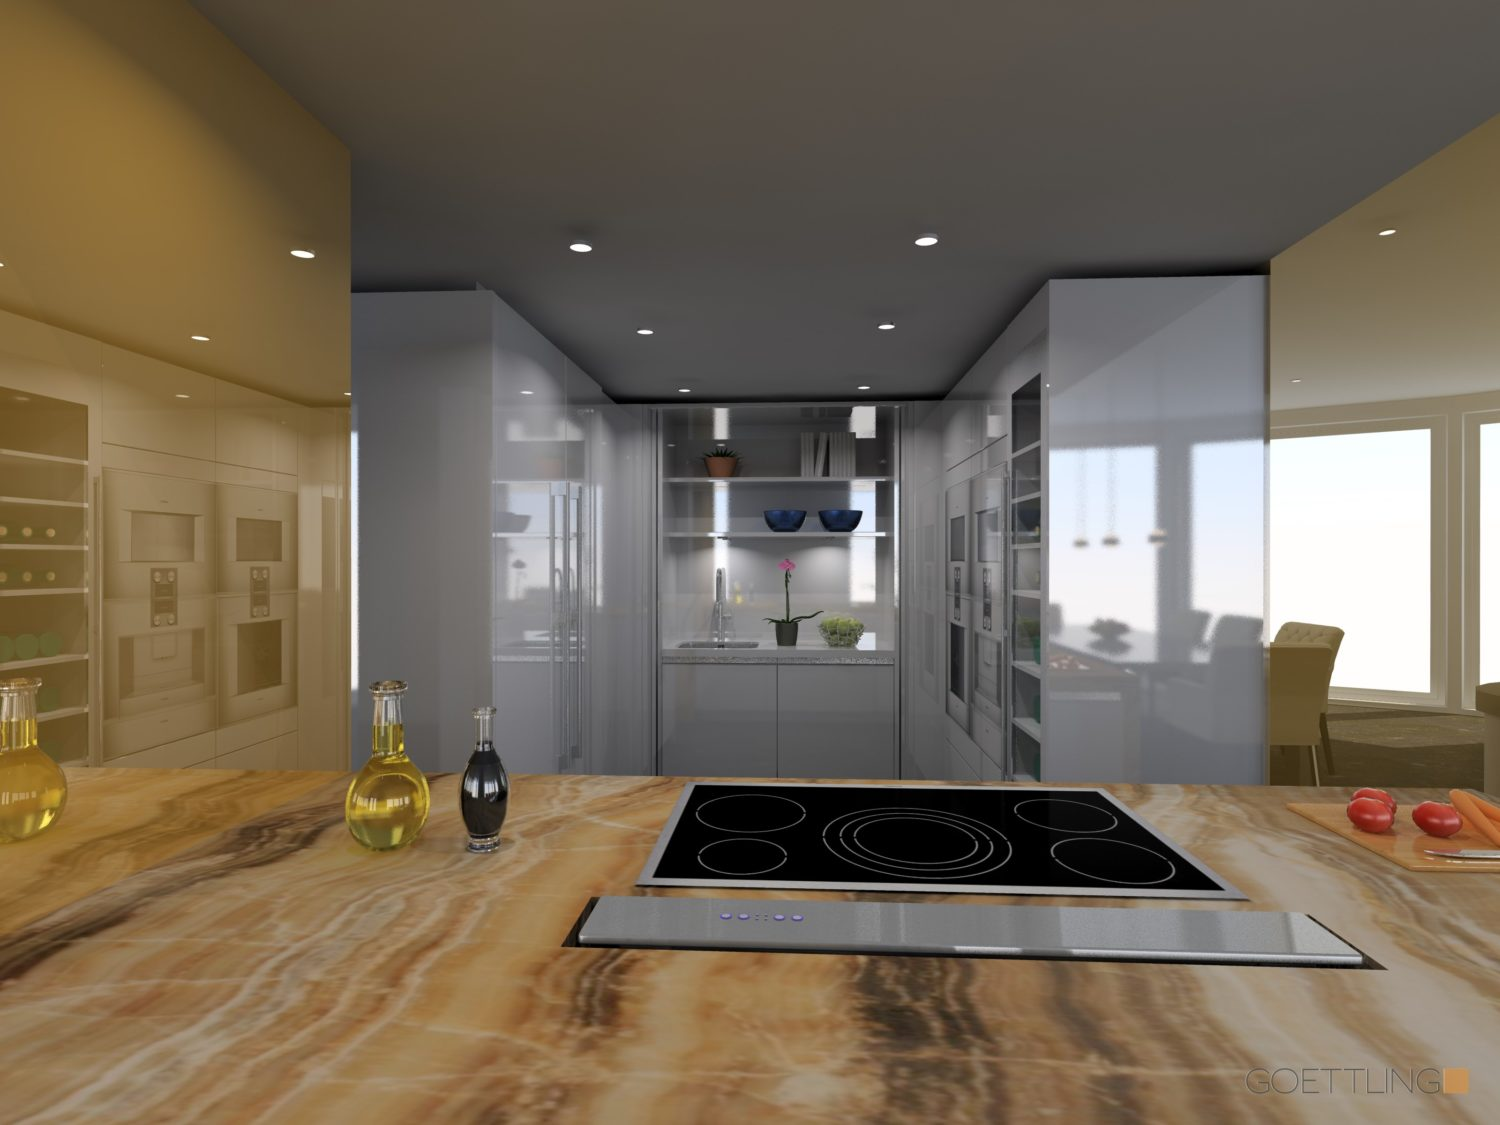 How to Renovate your Kitchen to Add Value?